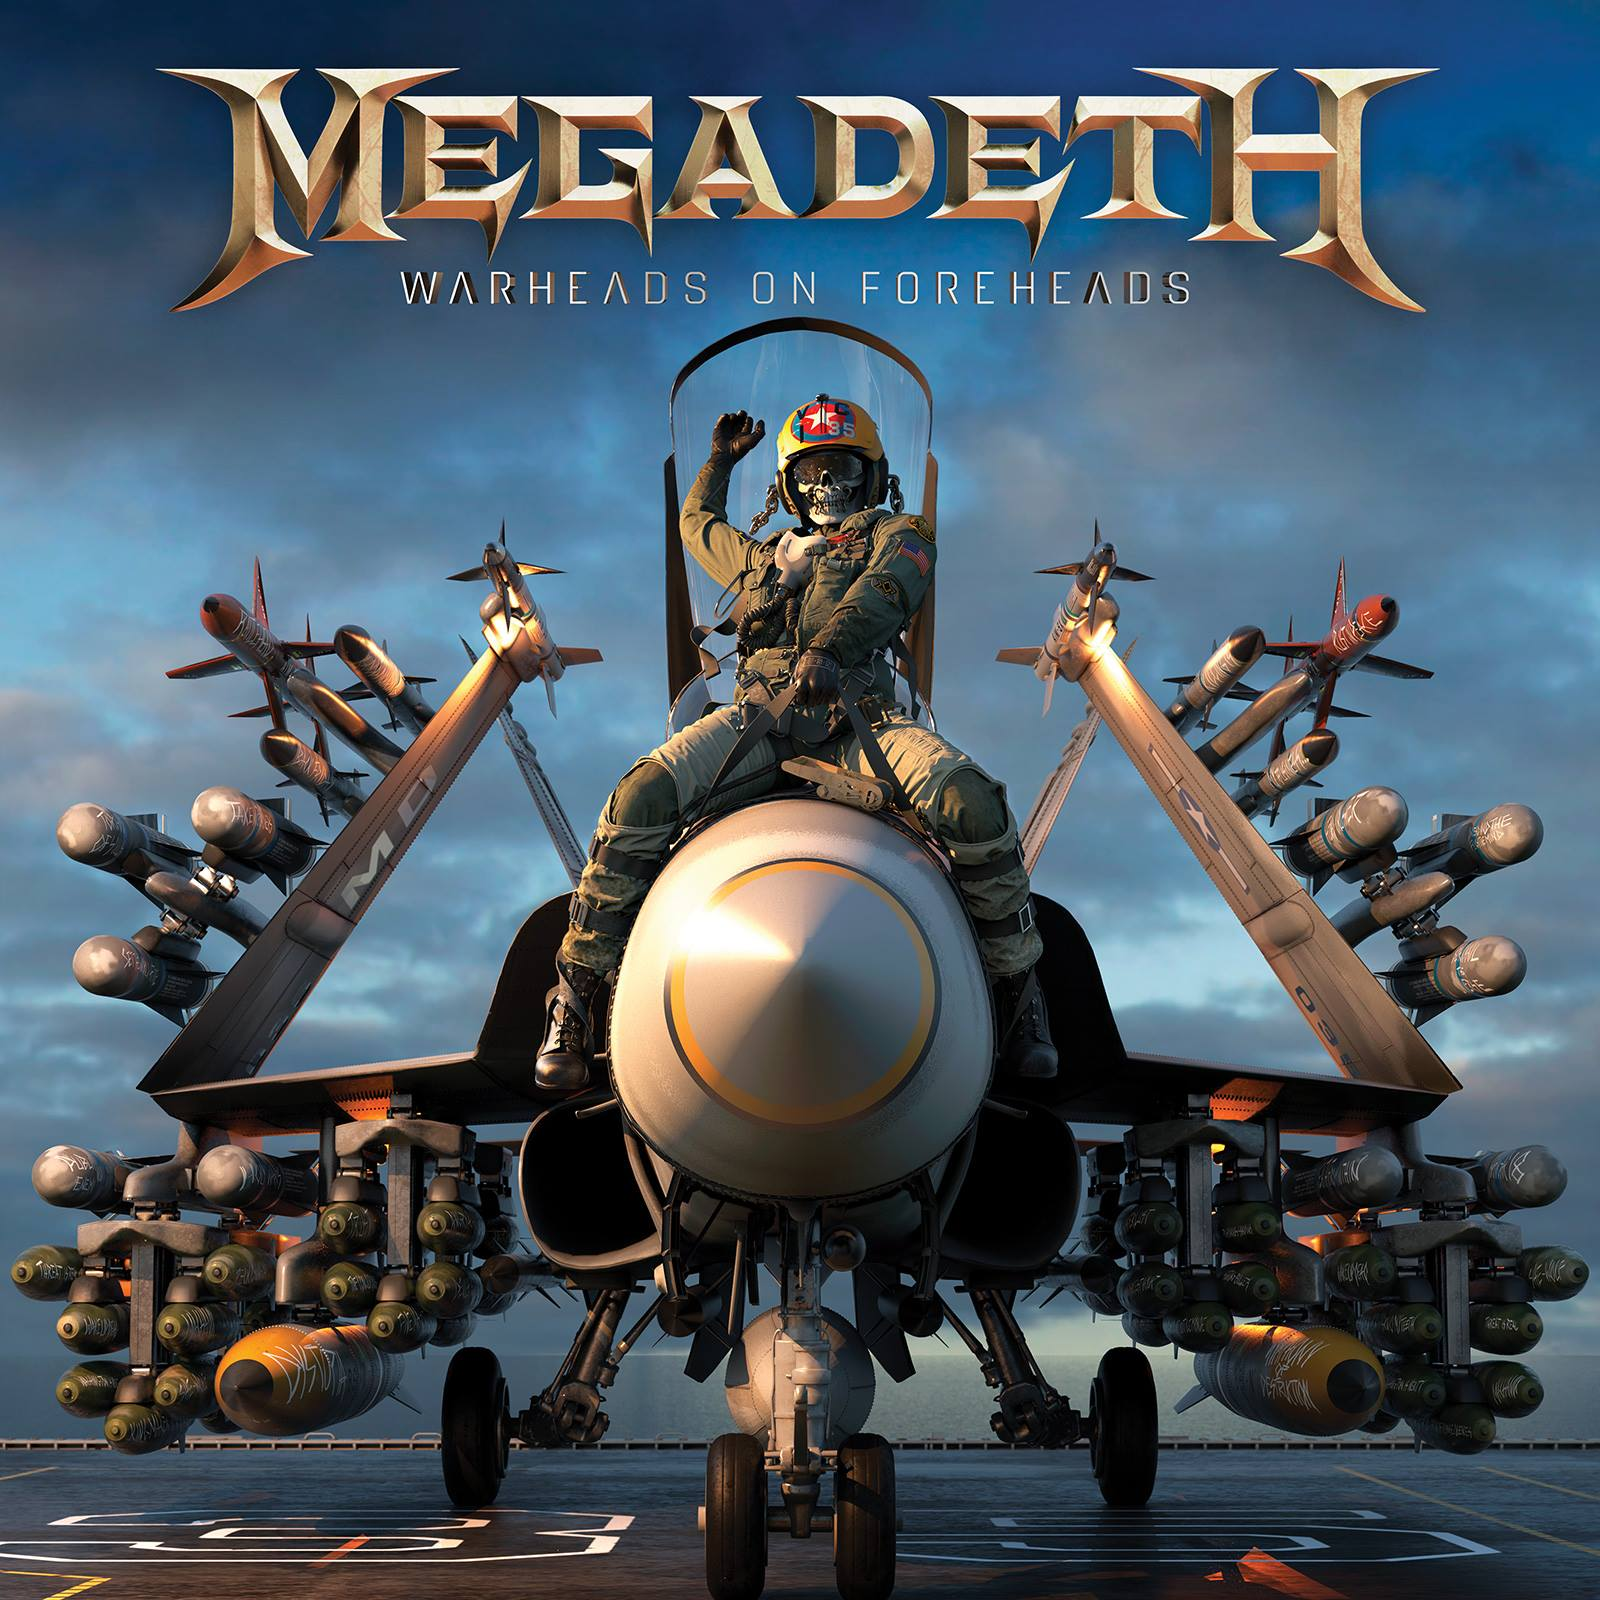 http://www.worshipmetal.com/wp-content/uploads/2019/03/megadeth-warheads-on-foreheads.png